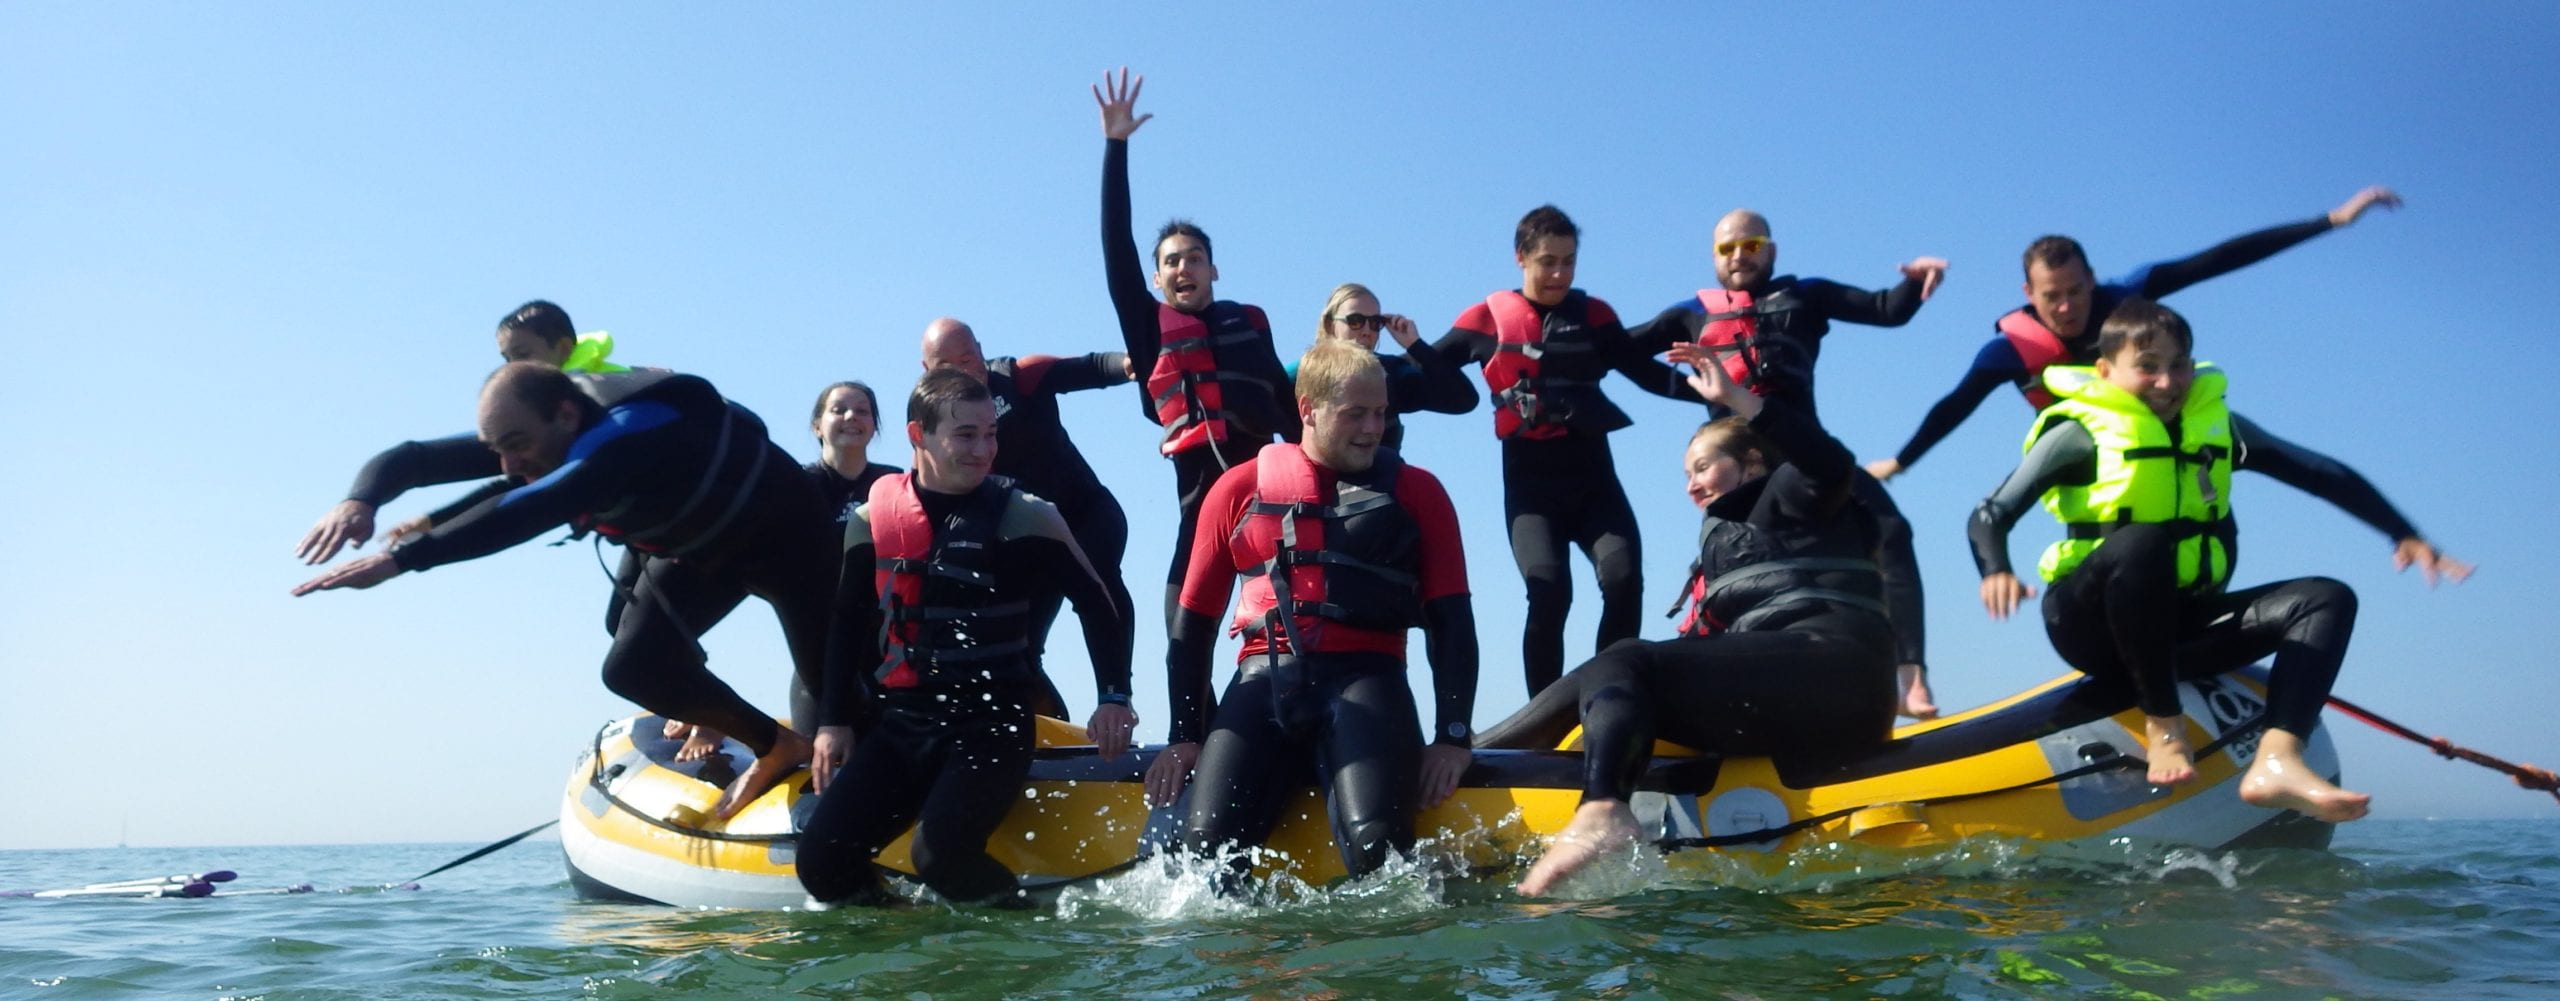 Crafters jumping from a raft in the water